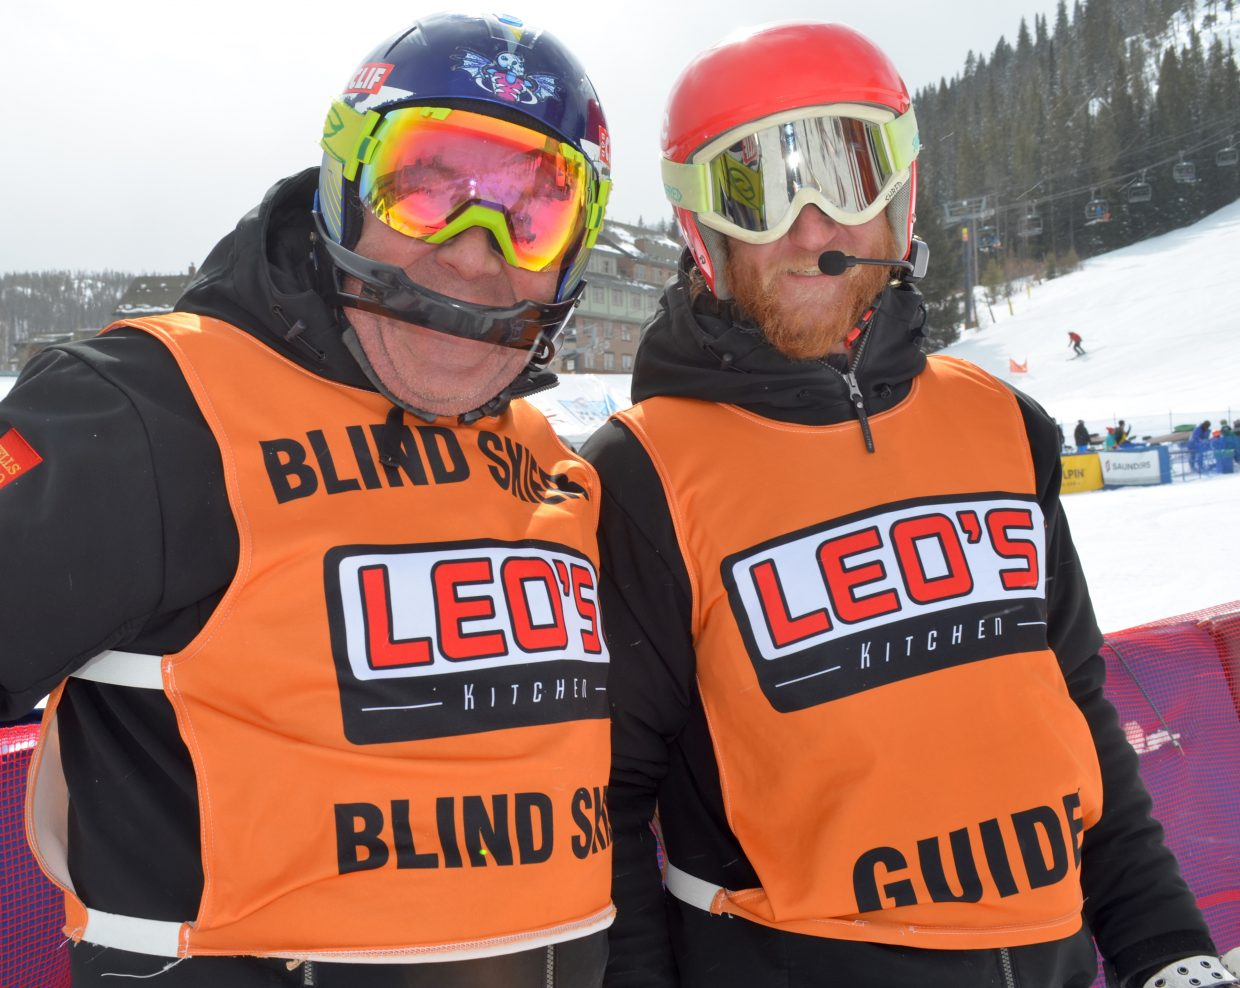 Visually impaired skier Larry Martin (left) pauses briefly with his ski guide Brad Washburn after one of his heats Sunday morning.